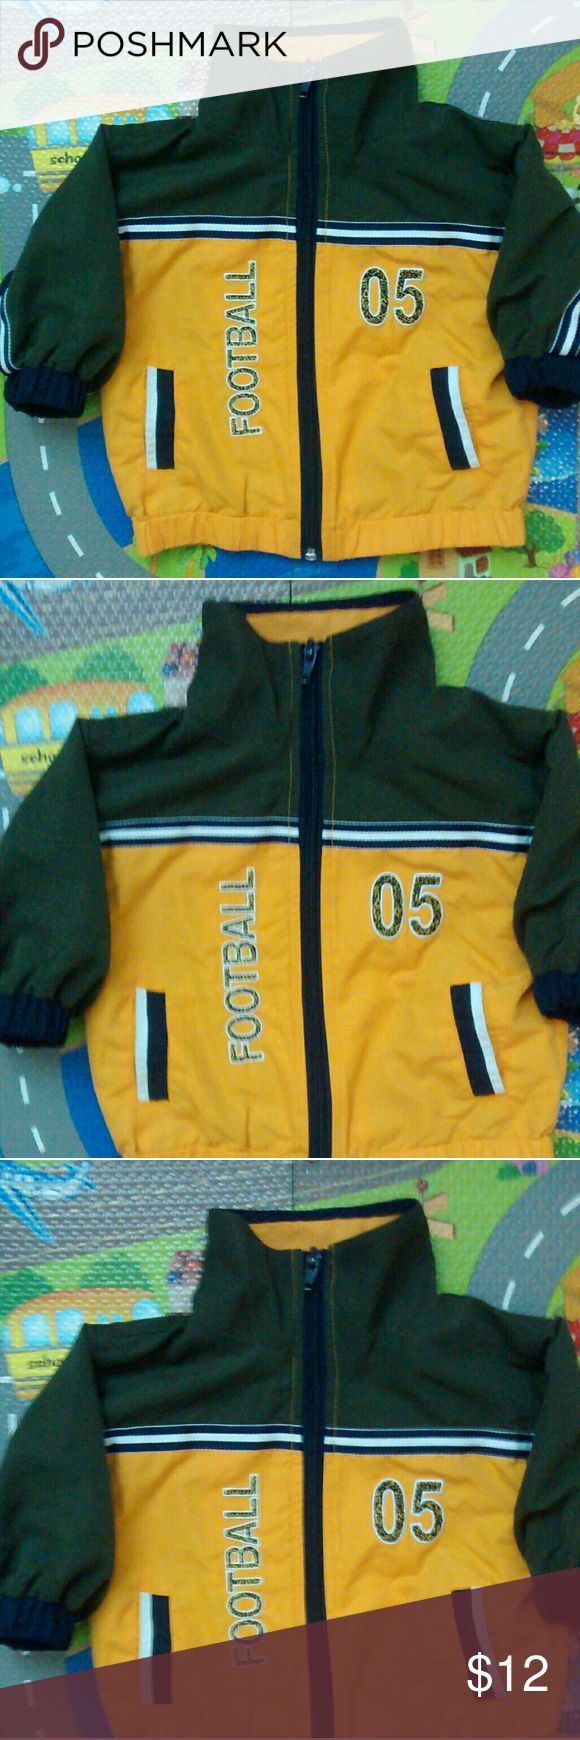 Football Jacket Fall zippered Football Jacket in army green, gold and dark blue in great condition with cotton lining, embroidered lettering and outlined graphics  size 6-9 months no brand listed on tag Jackets & Coats